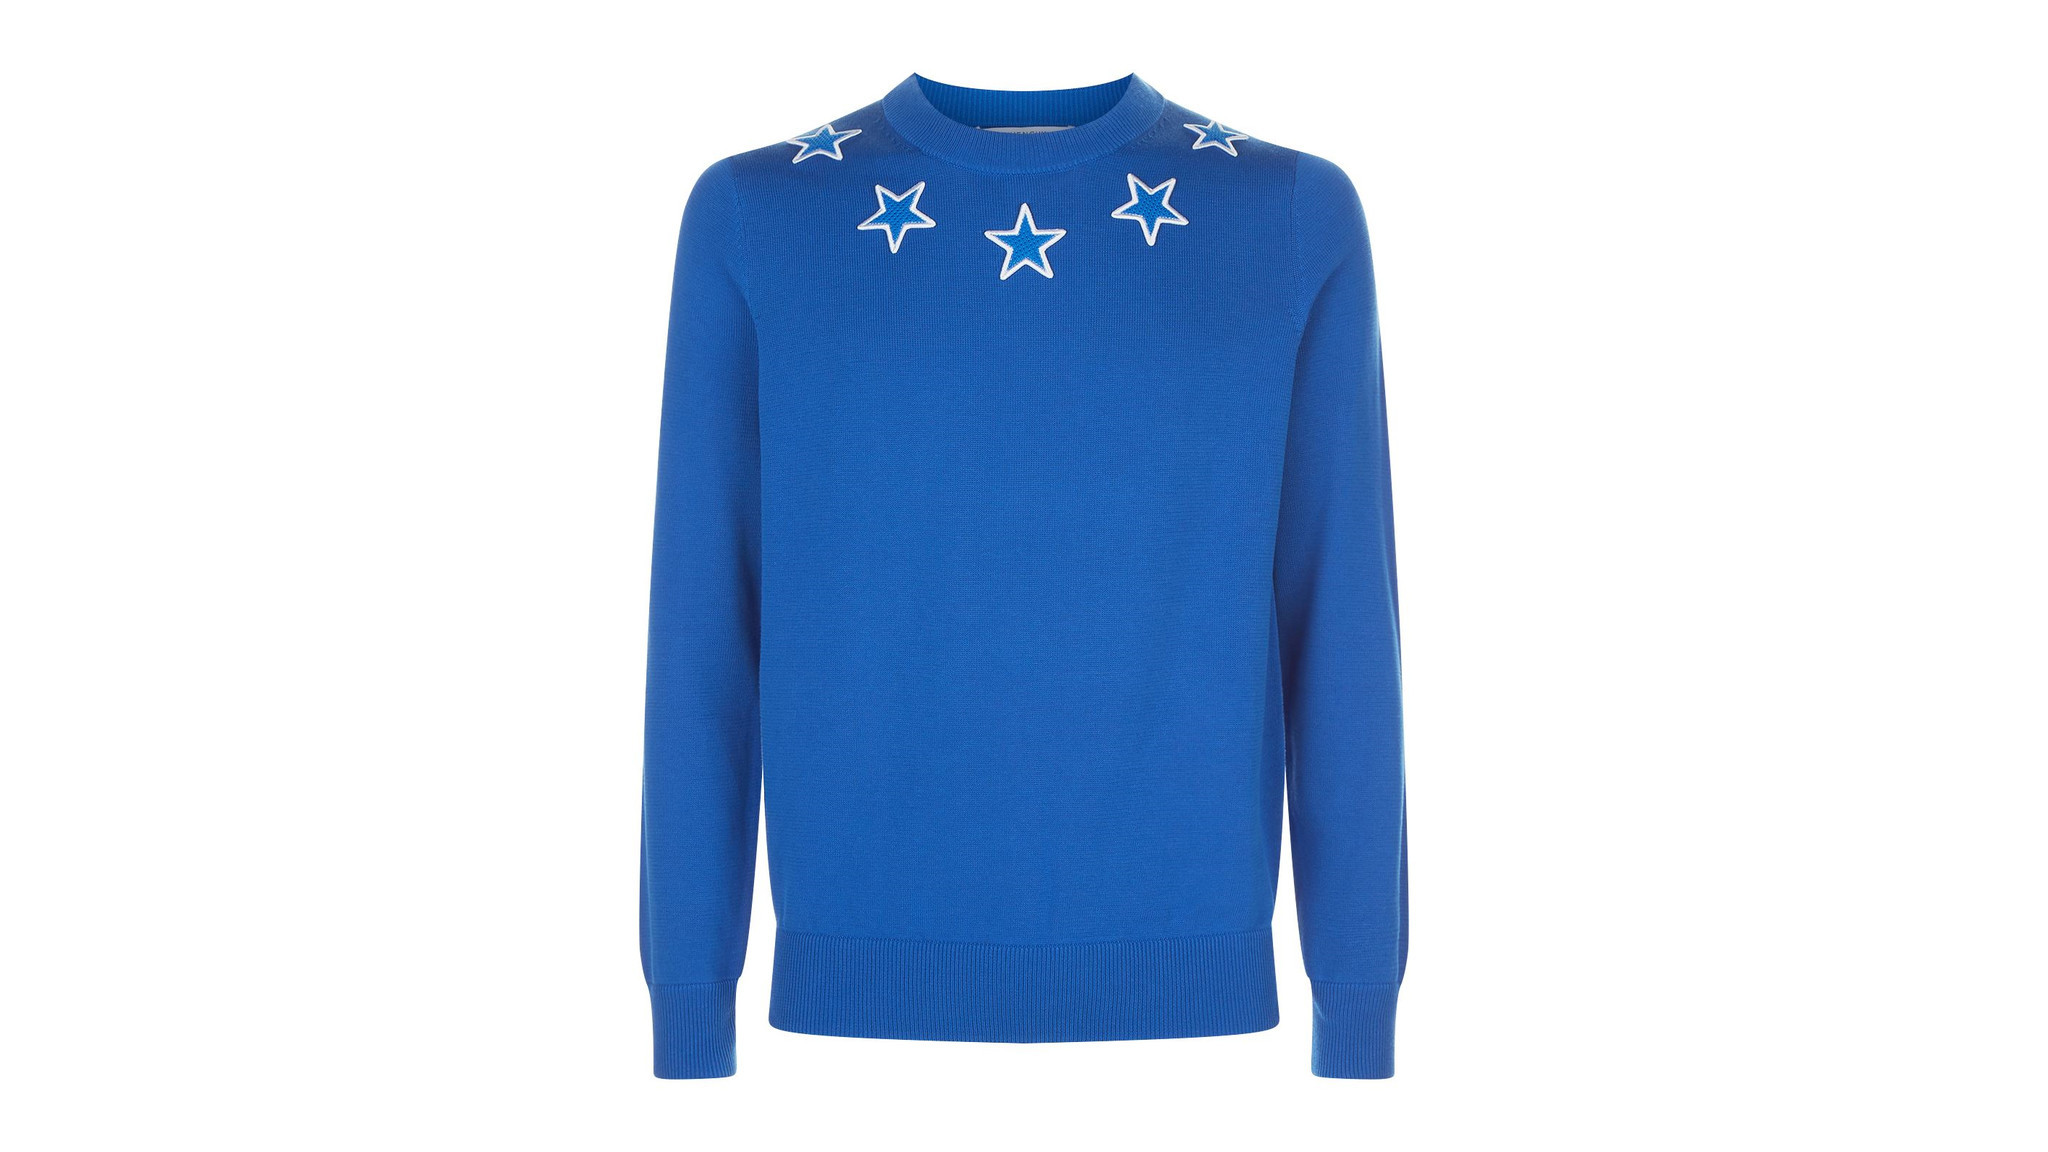 Designer: Givenchy Photo credit: Givenchy Electric-blue technical cotton men's sweater by Givenchy h